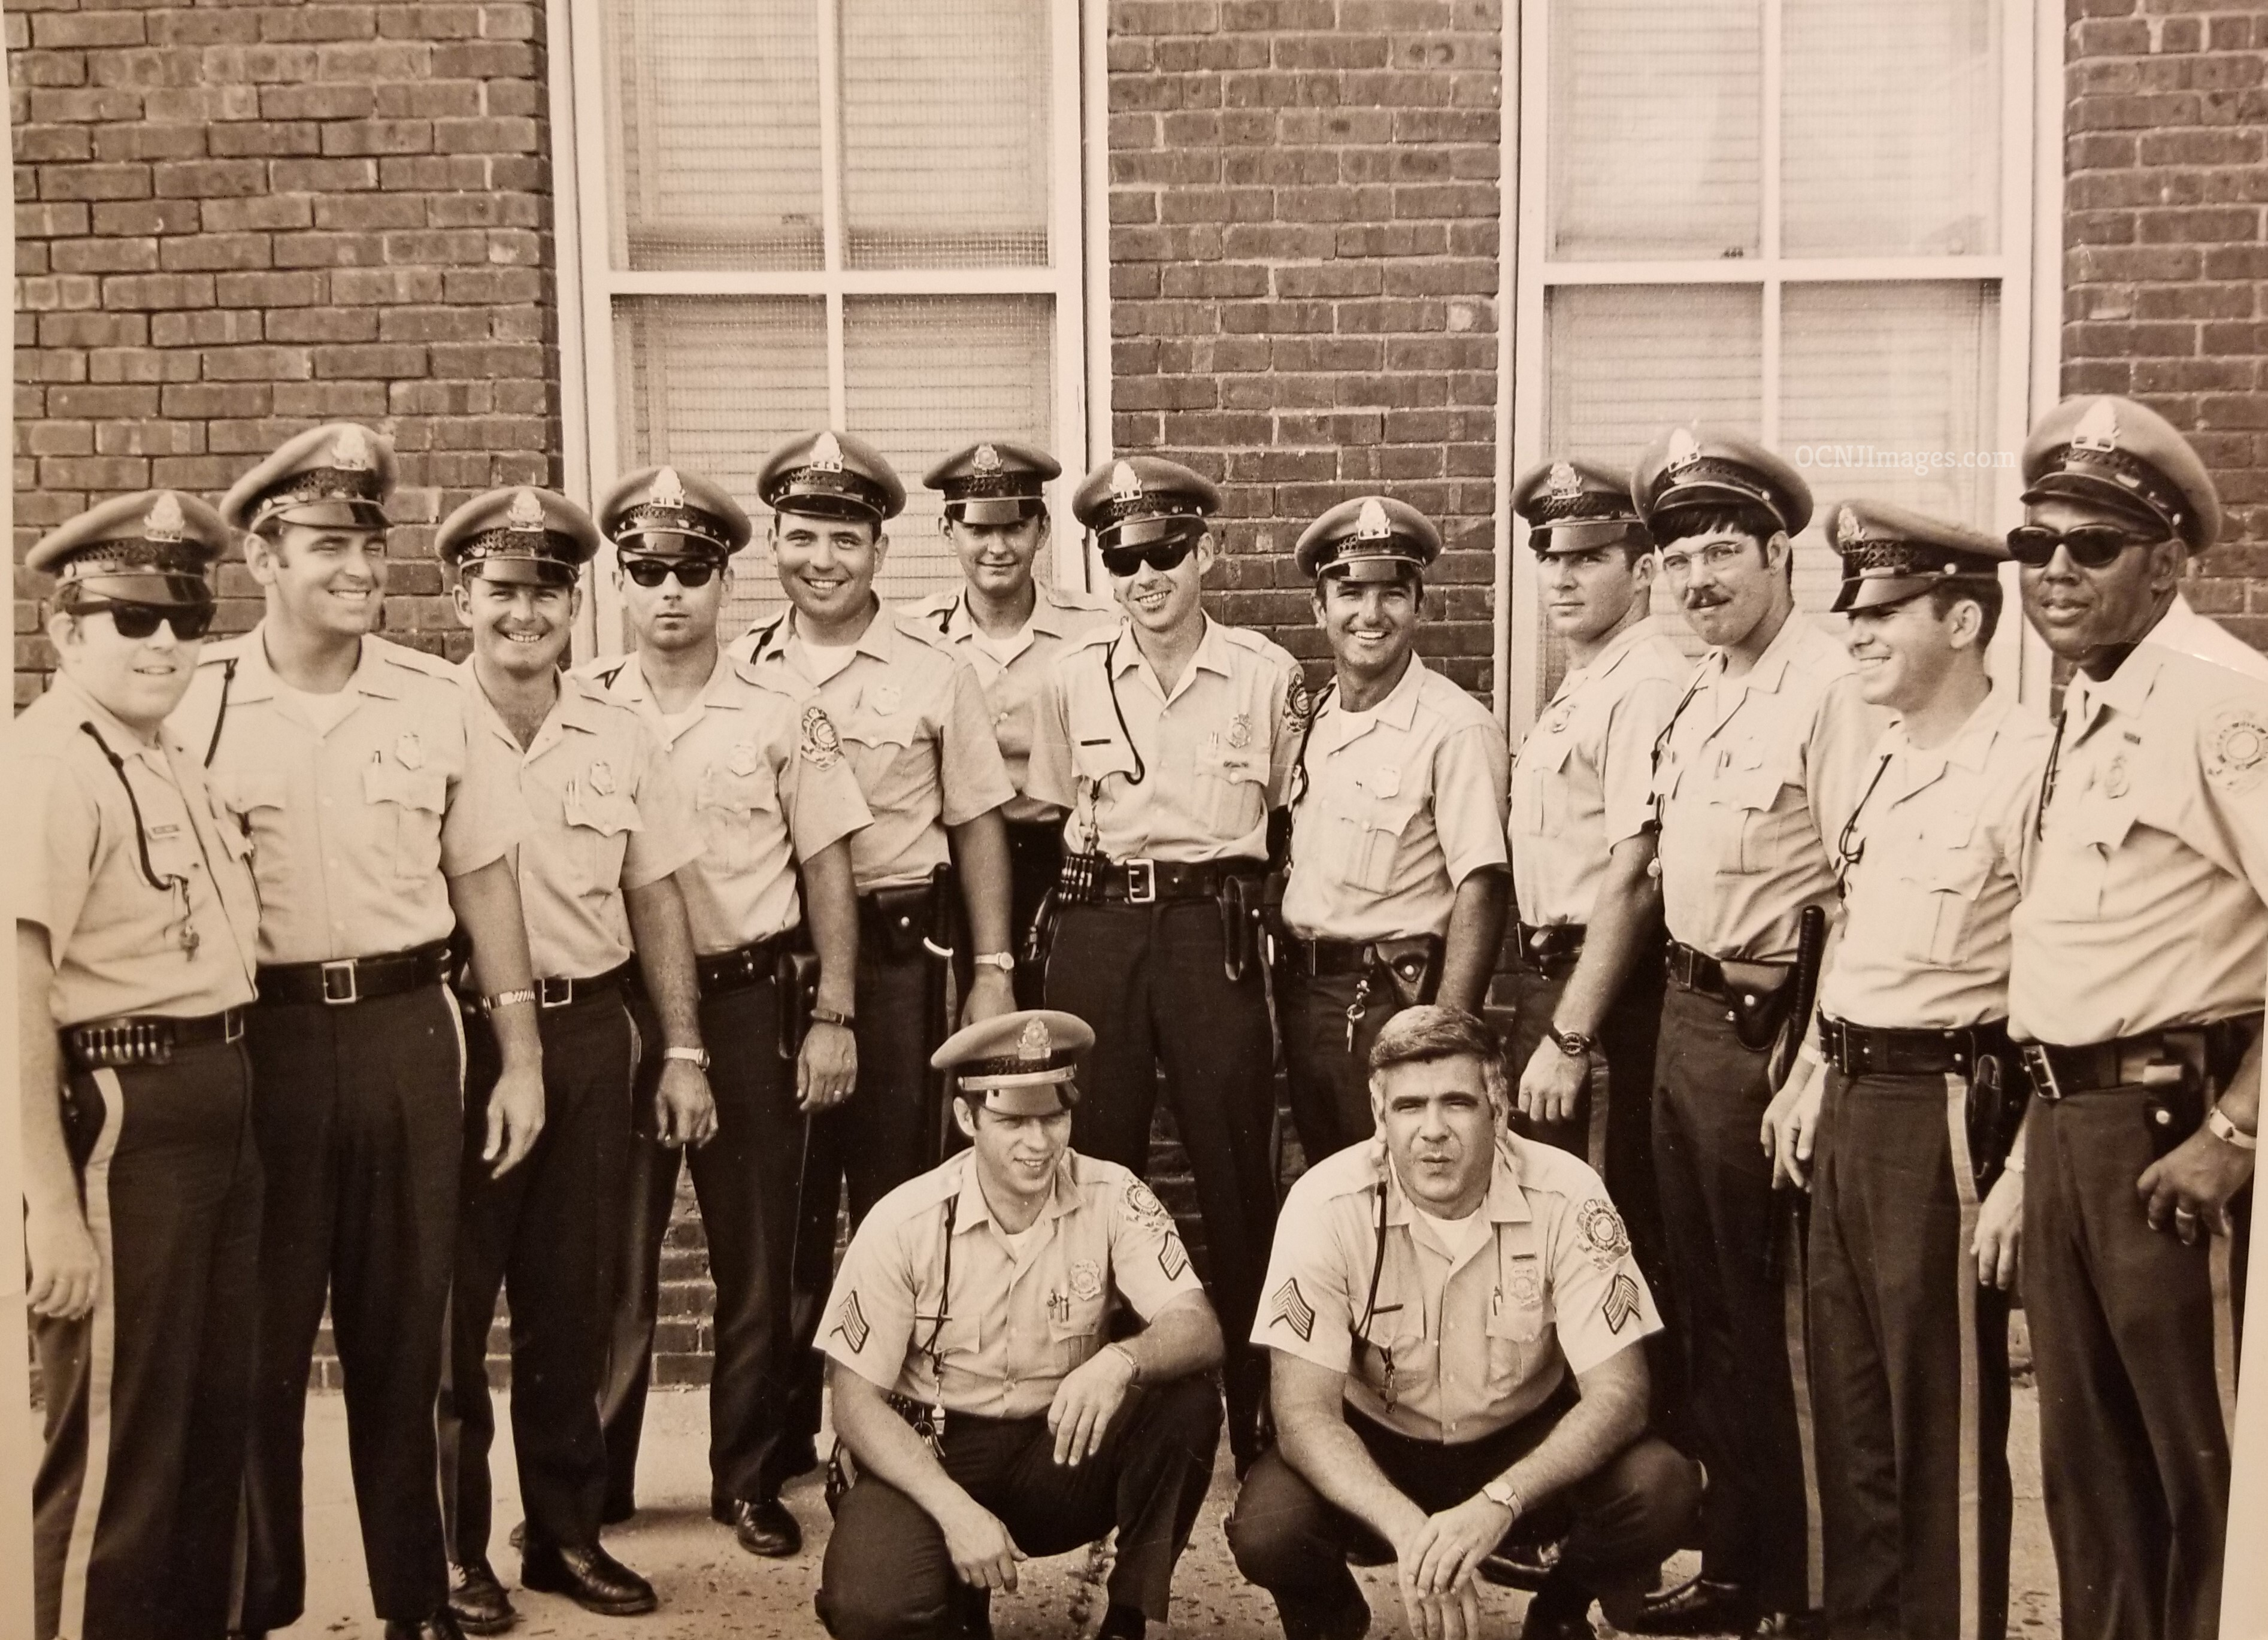 Ocean City Police - Year Unknown